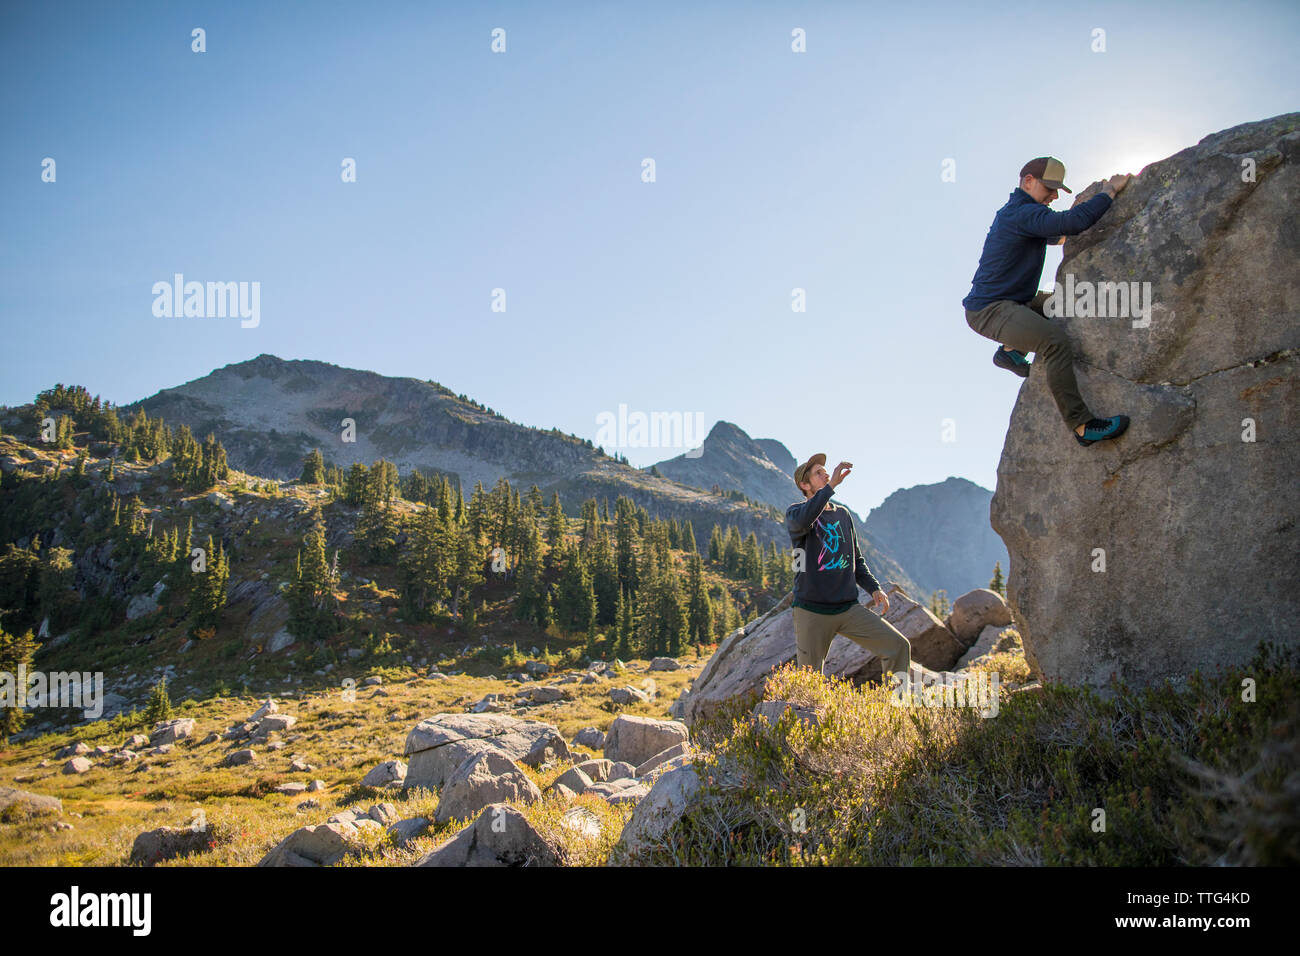 Climber bouldering on large rock with spotter below. - Stock Image